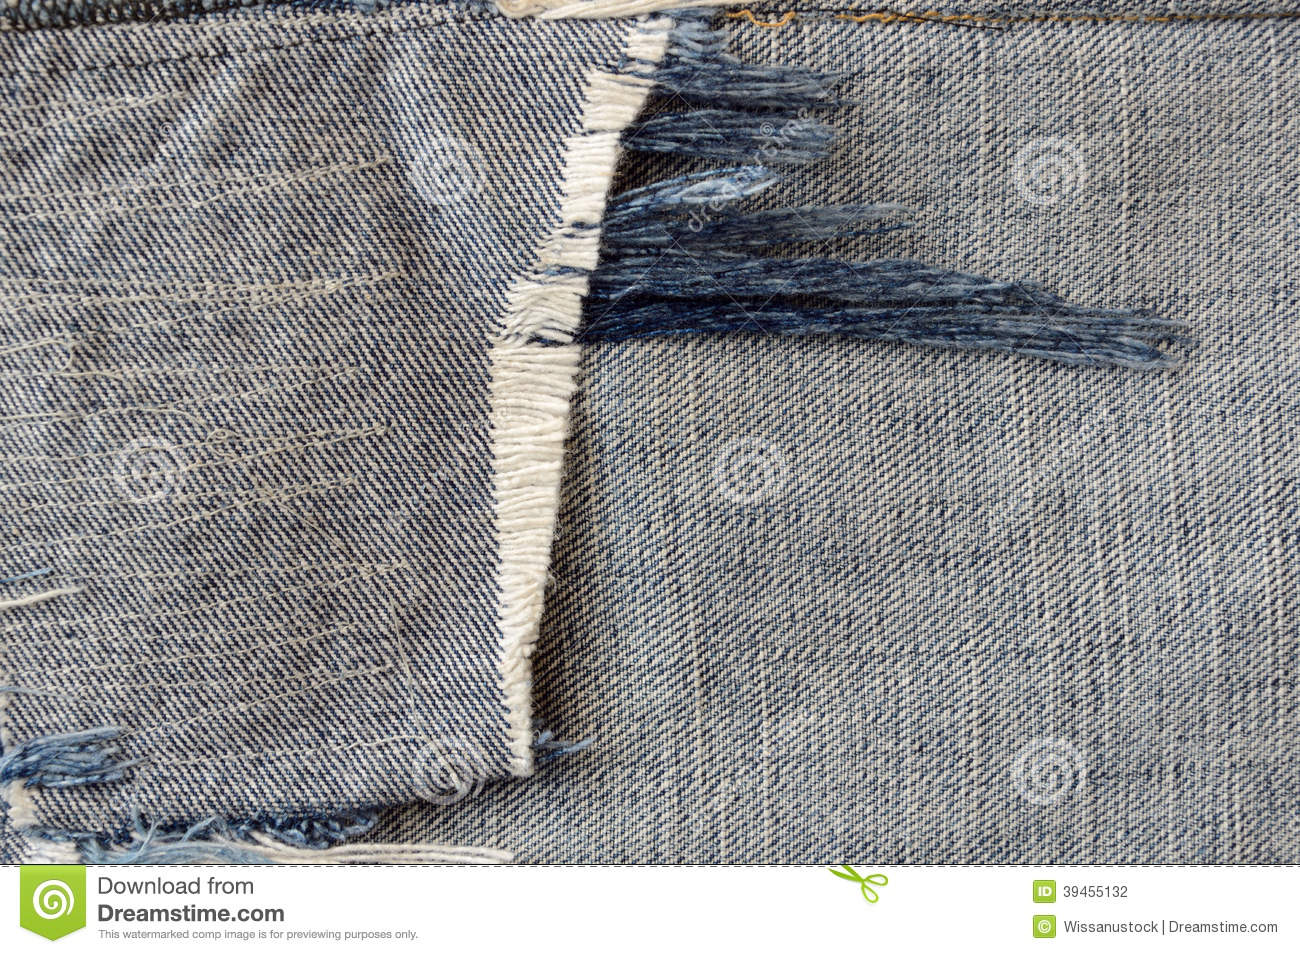 Ragged fabric of old bluejeans